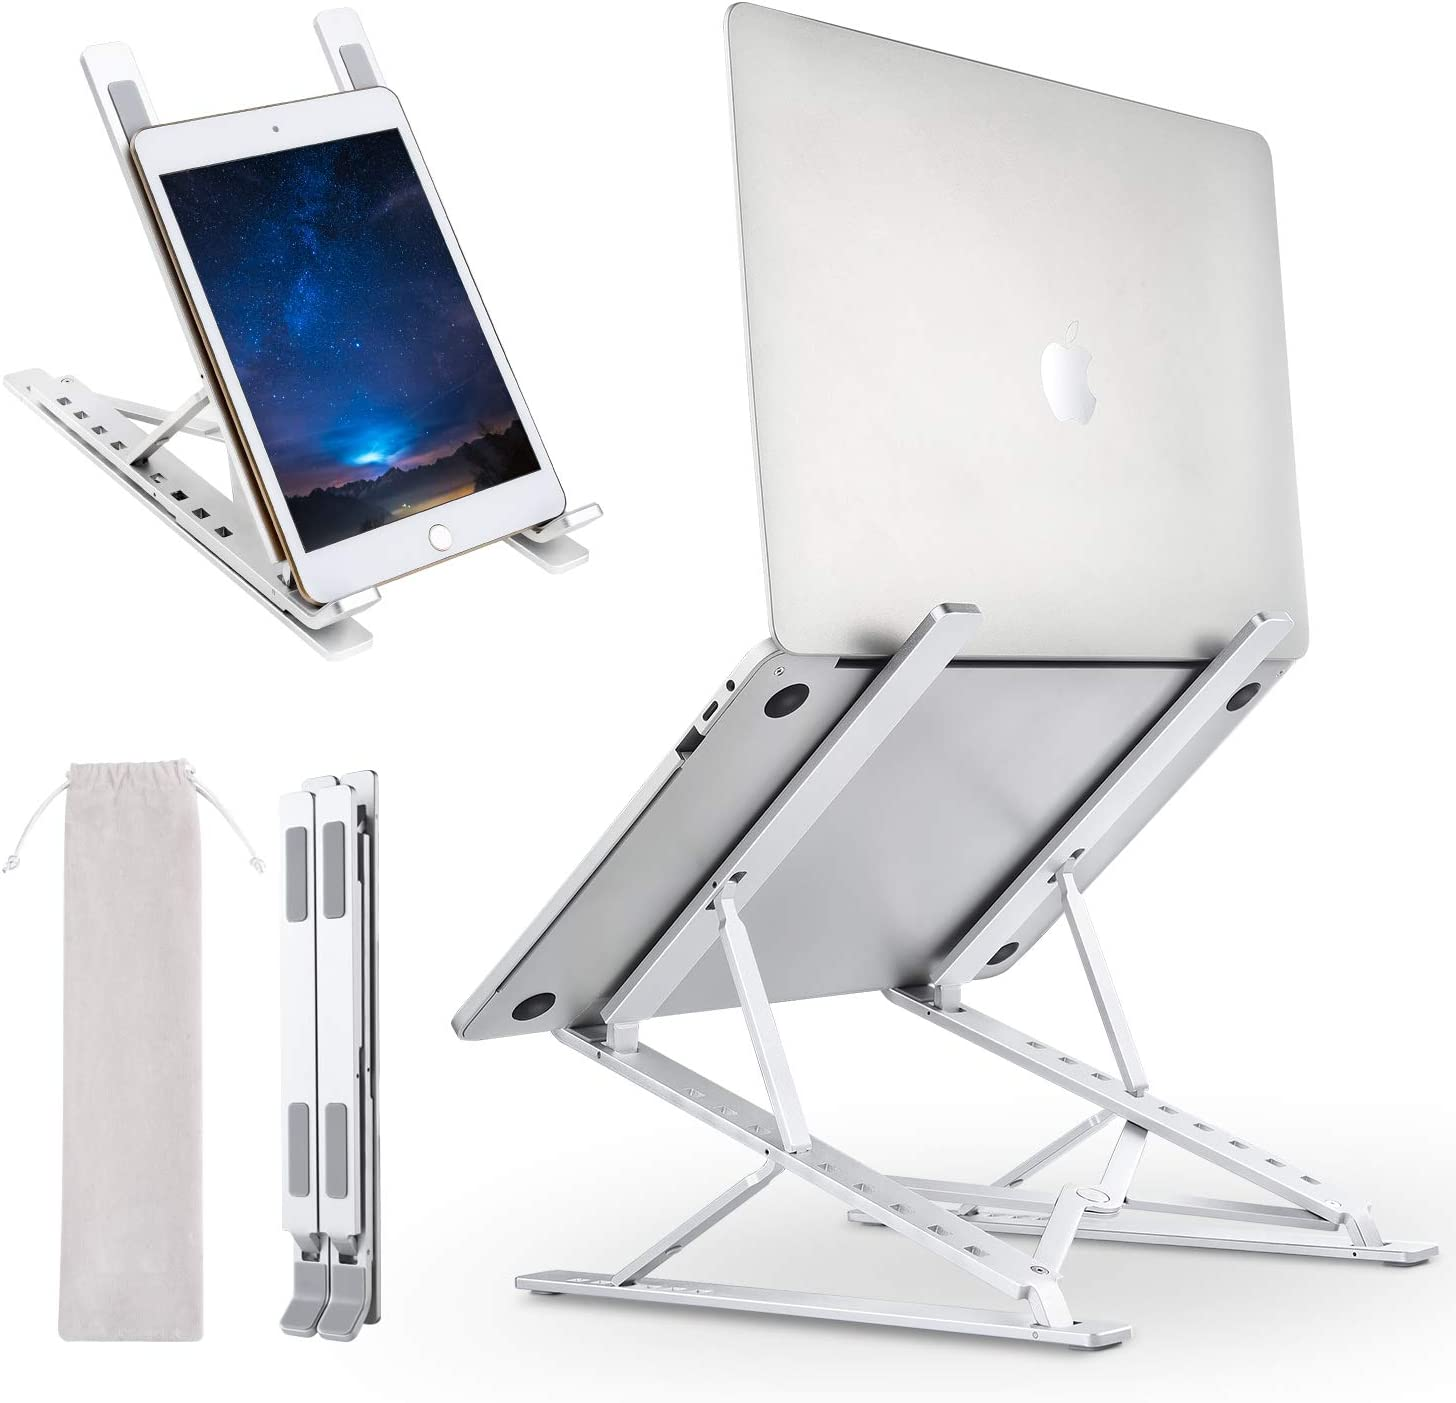 "Laptop Stand Portable Adjustable Height for Desk, Ergonomic Foldable Laptop Riser,Level 6-Height 9-Angles to Sit or Stand, Aluminum Anti-Slip Tray Cooling Holder for 10"" - 17.3"" Laptop Tablet iPad"